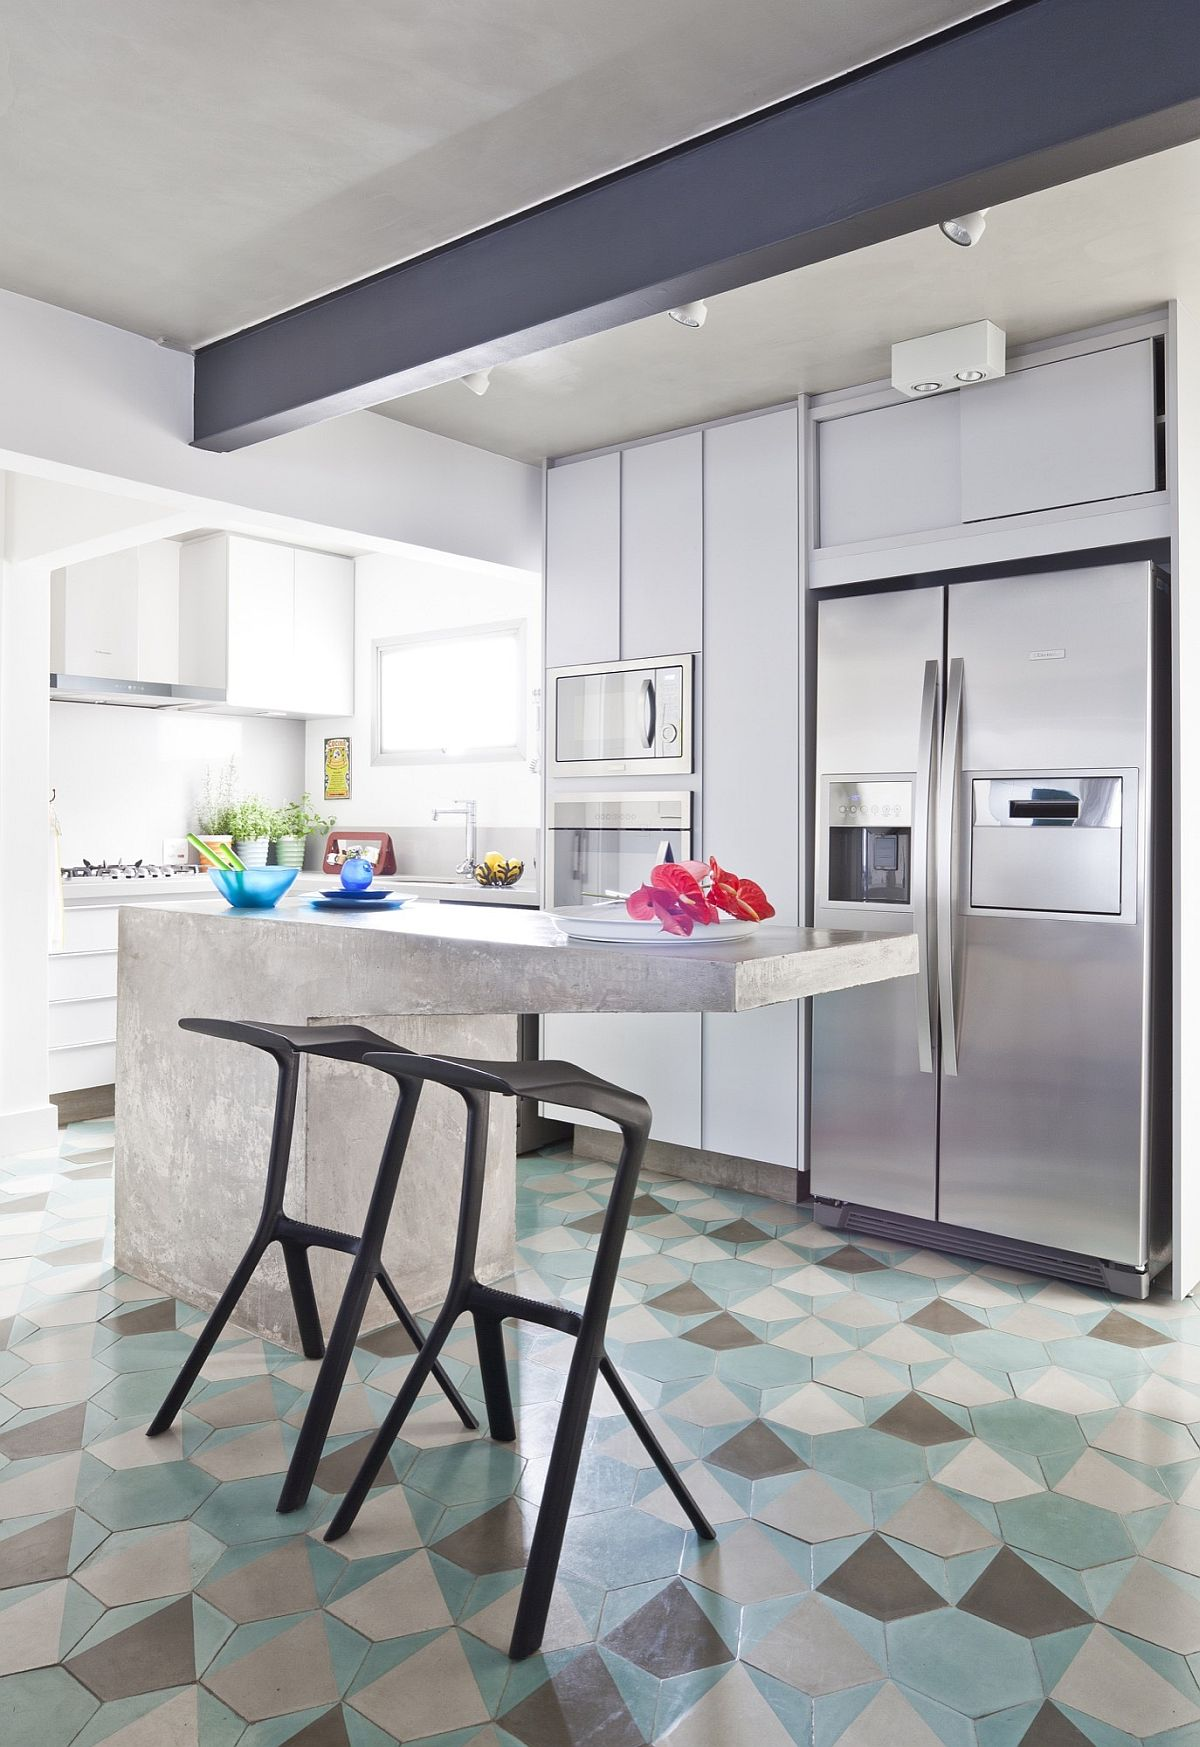 Cement kitchen island and cement colored ceiling for the indoors